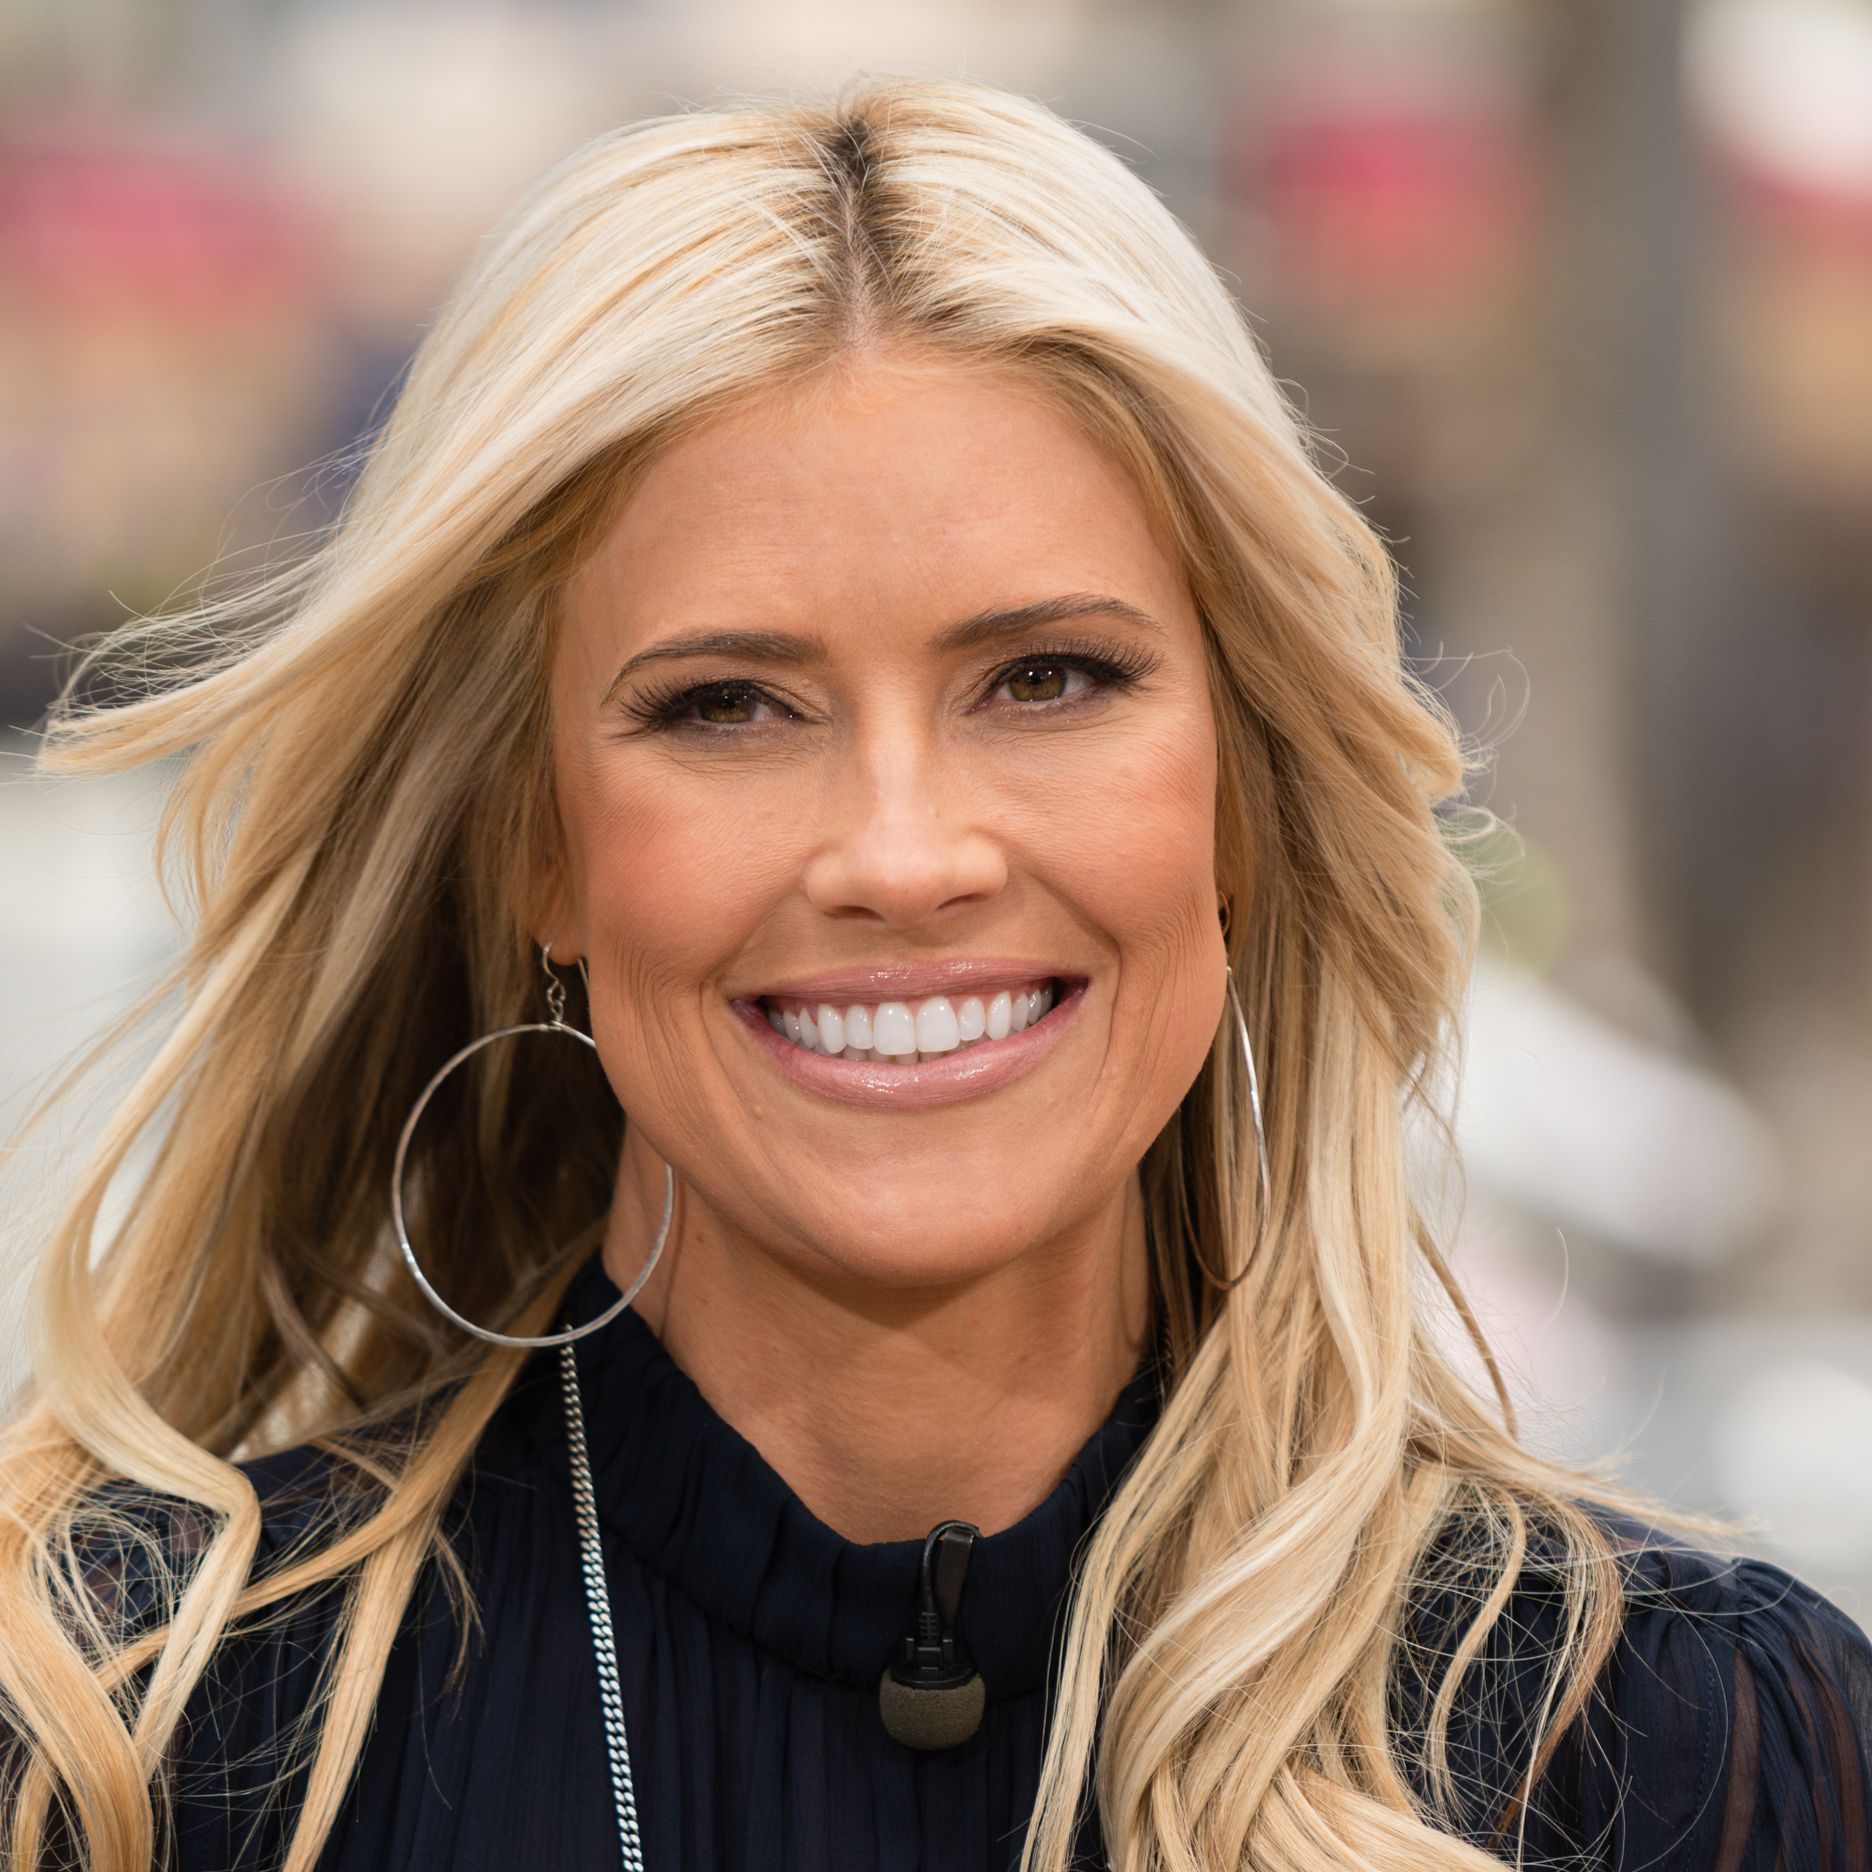 Christina Anstead Shares the Funny Way She Told Ant She Was Pregnant